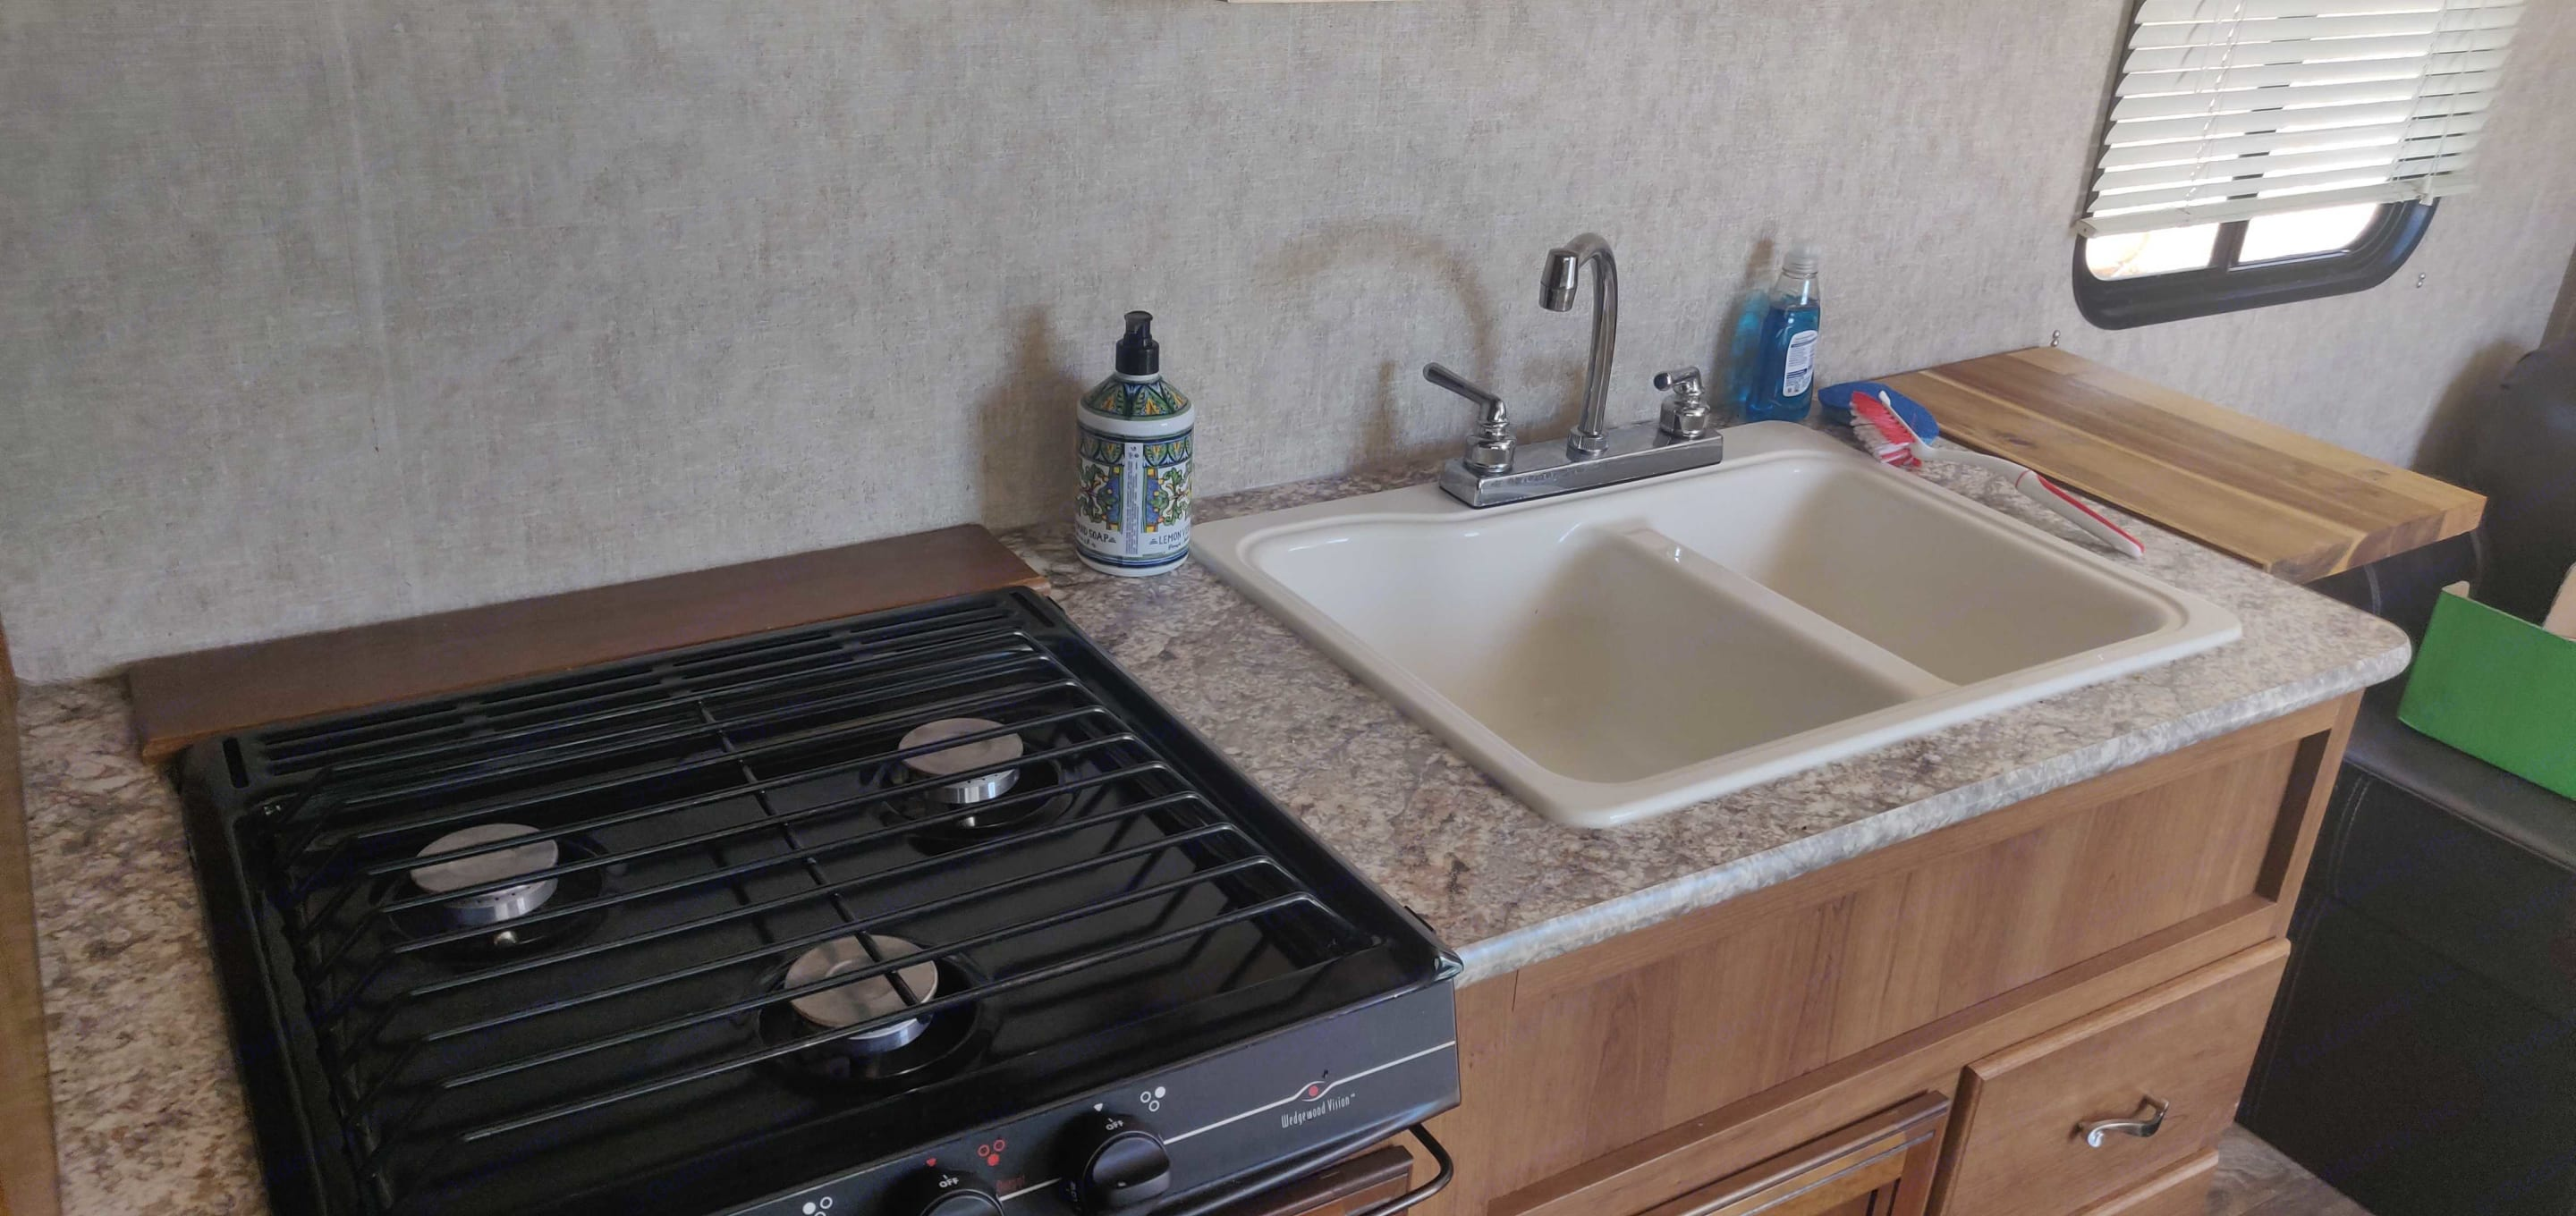 sink and stove in the kitchen. Prime Time Avenger 2016